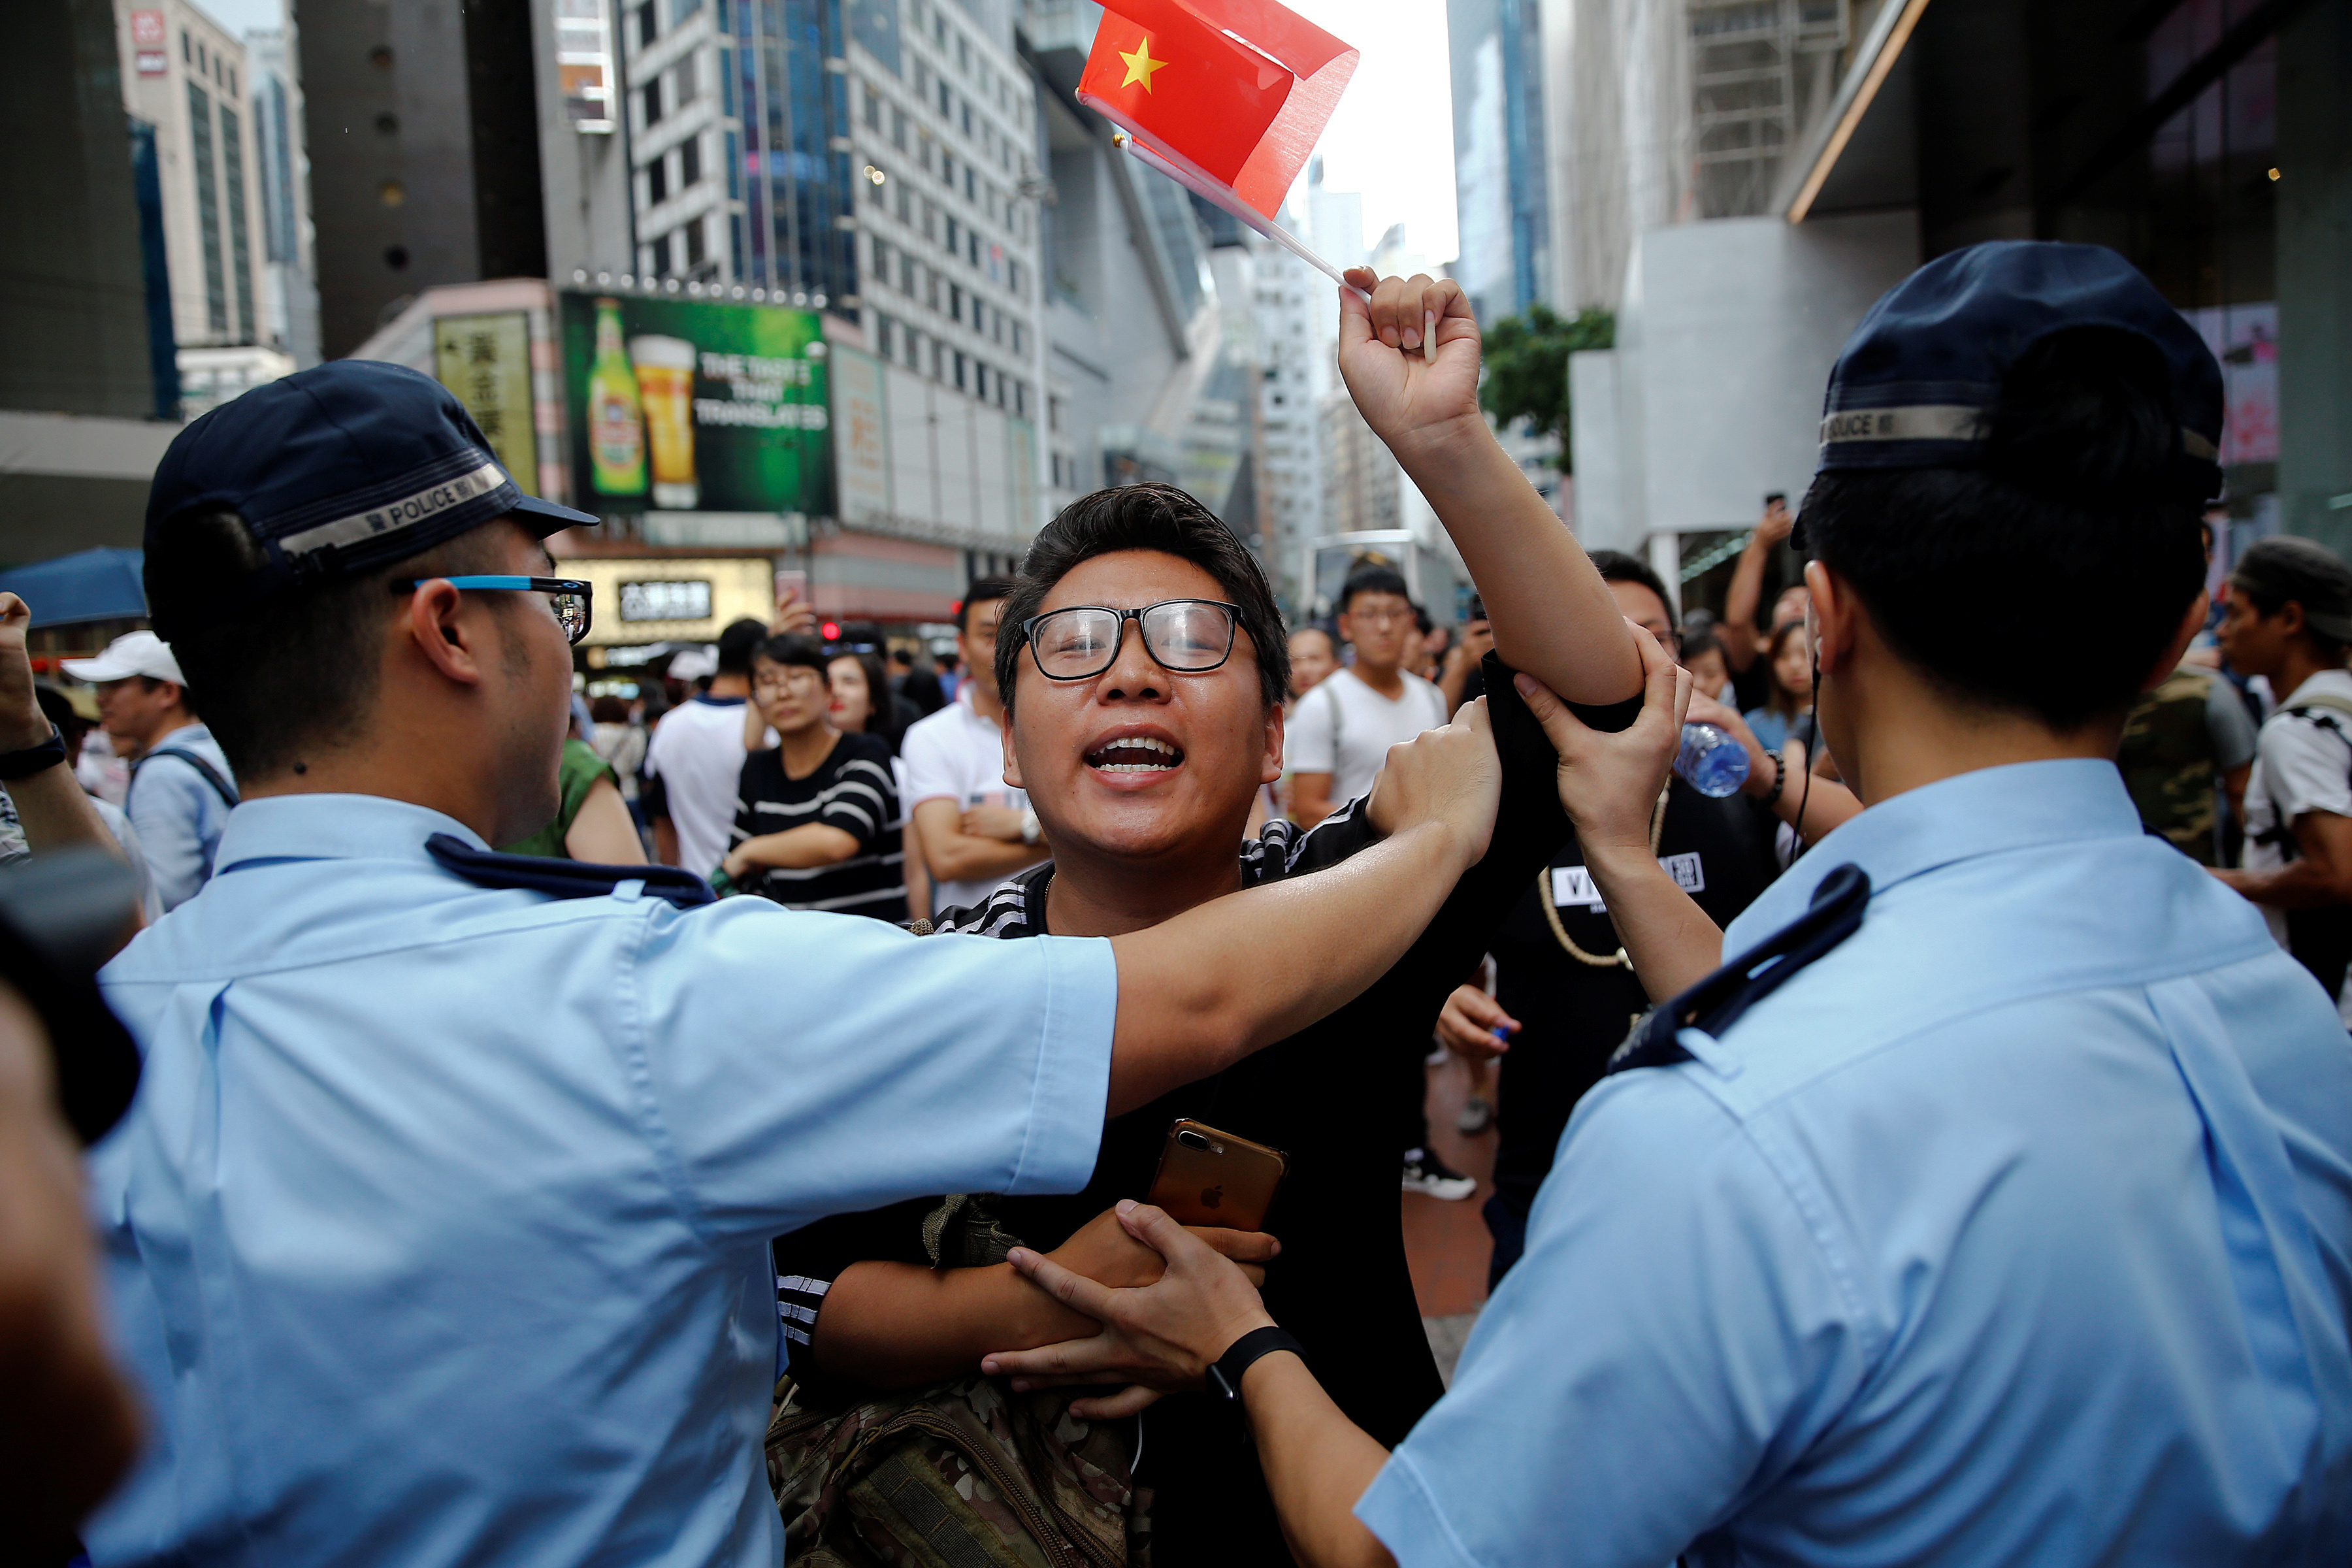 A pro-China supporter is stopped by police as he tries to get closer to pro-democracy supporters during a march. Hong Kong, China July 1, 2017. REUTERS/Damir Sagolj